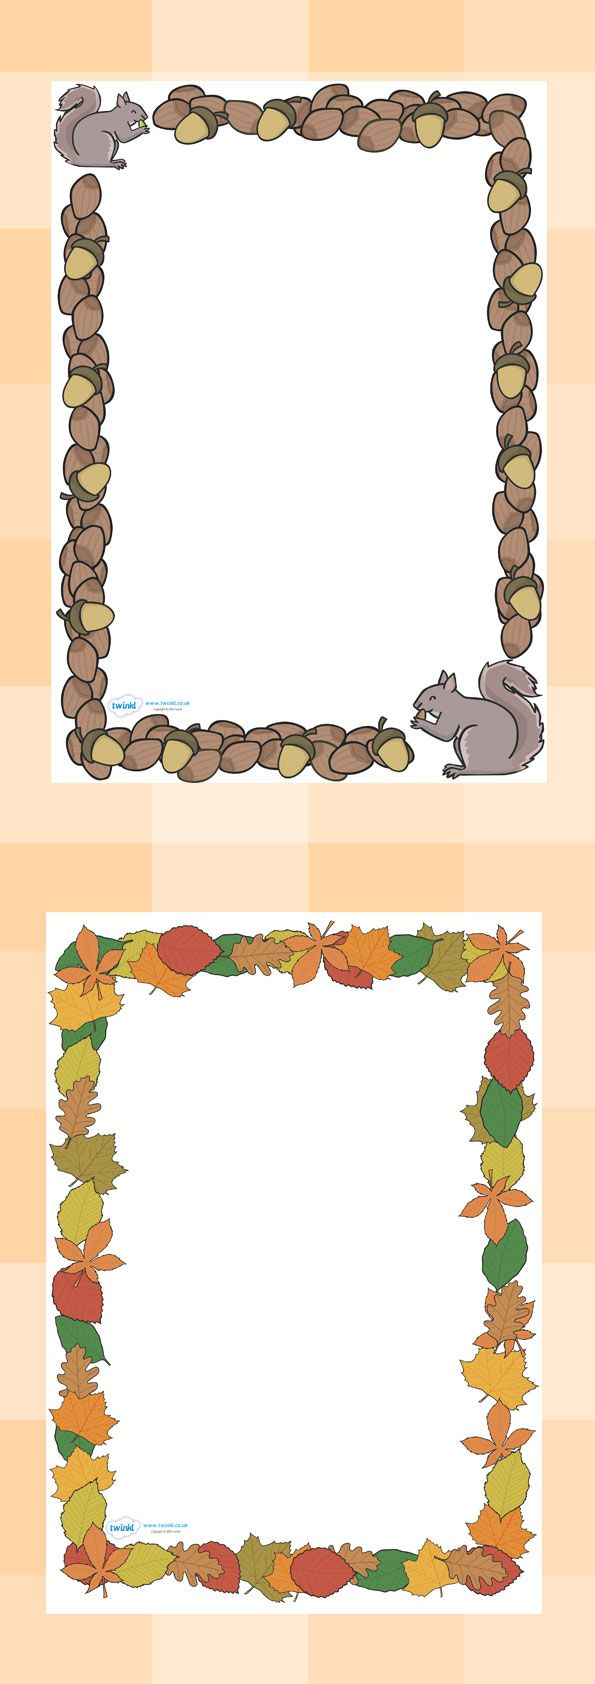 Twinkl Resources >> Autumn Page Borders  >> Thousands of printable primary teaching resources for EYFS, KS1, KS2 and beyond! page border, border, autumn, seasons, autumn pictures, autumn display, leaves, acorn, conker,